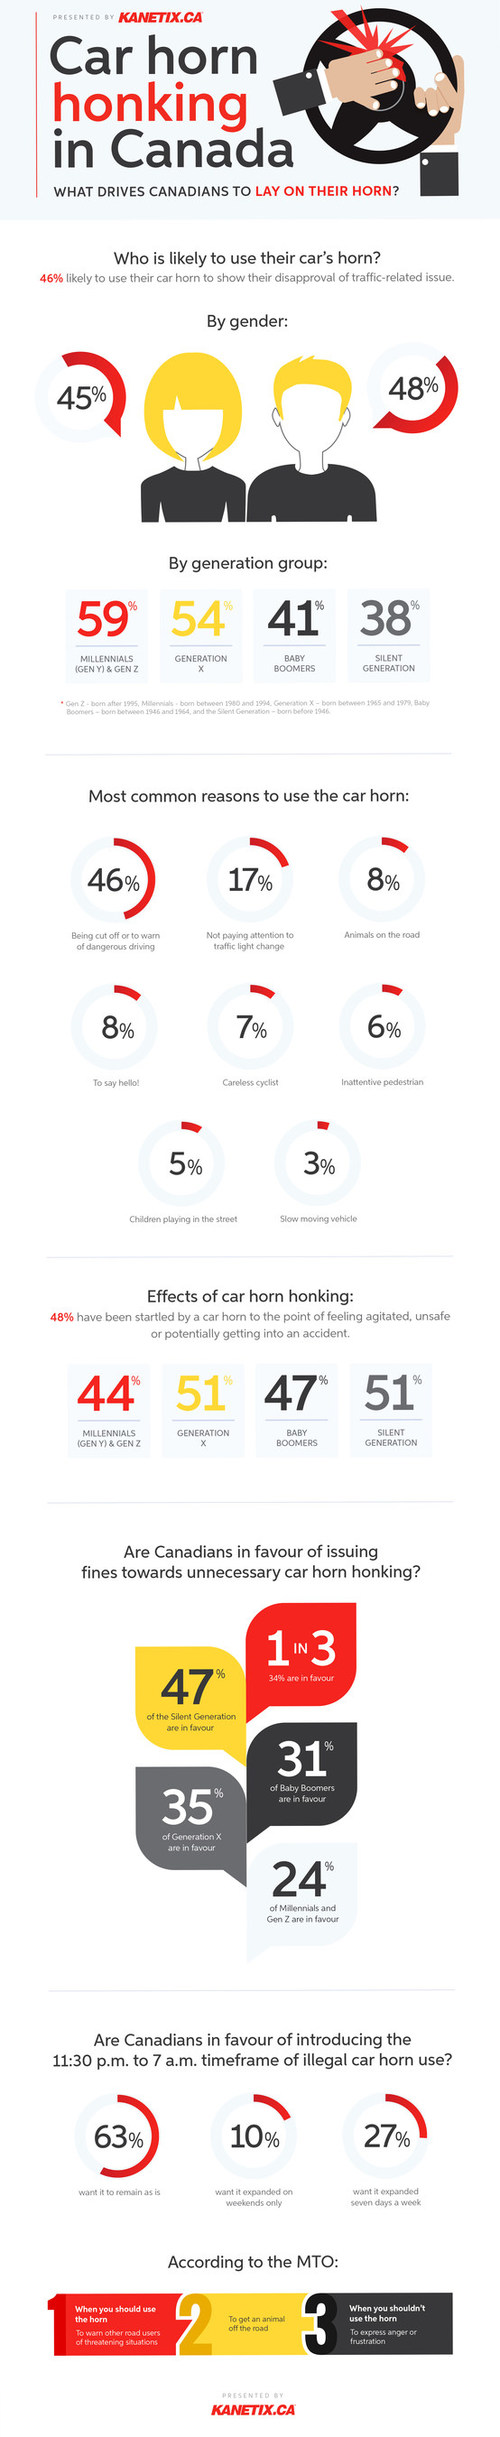 Car horn honking in Canada (CNW Group/Kanetix.ca)